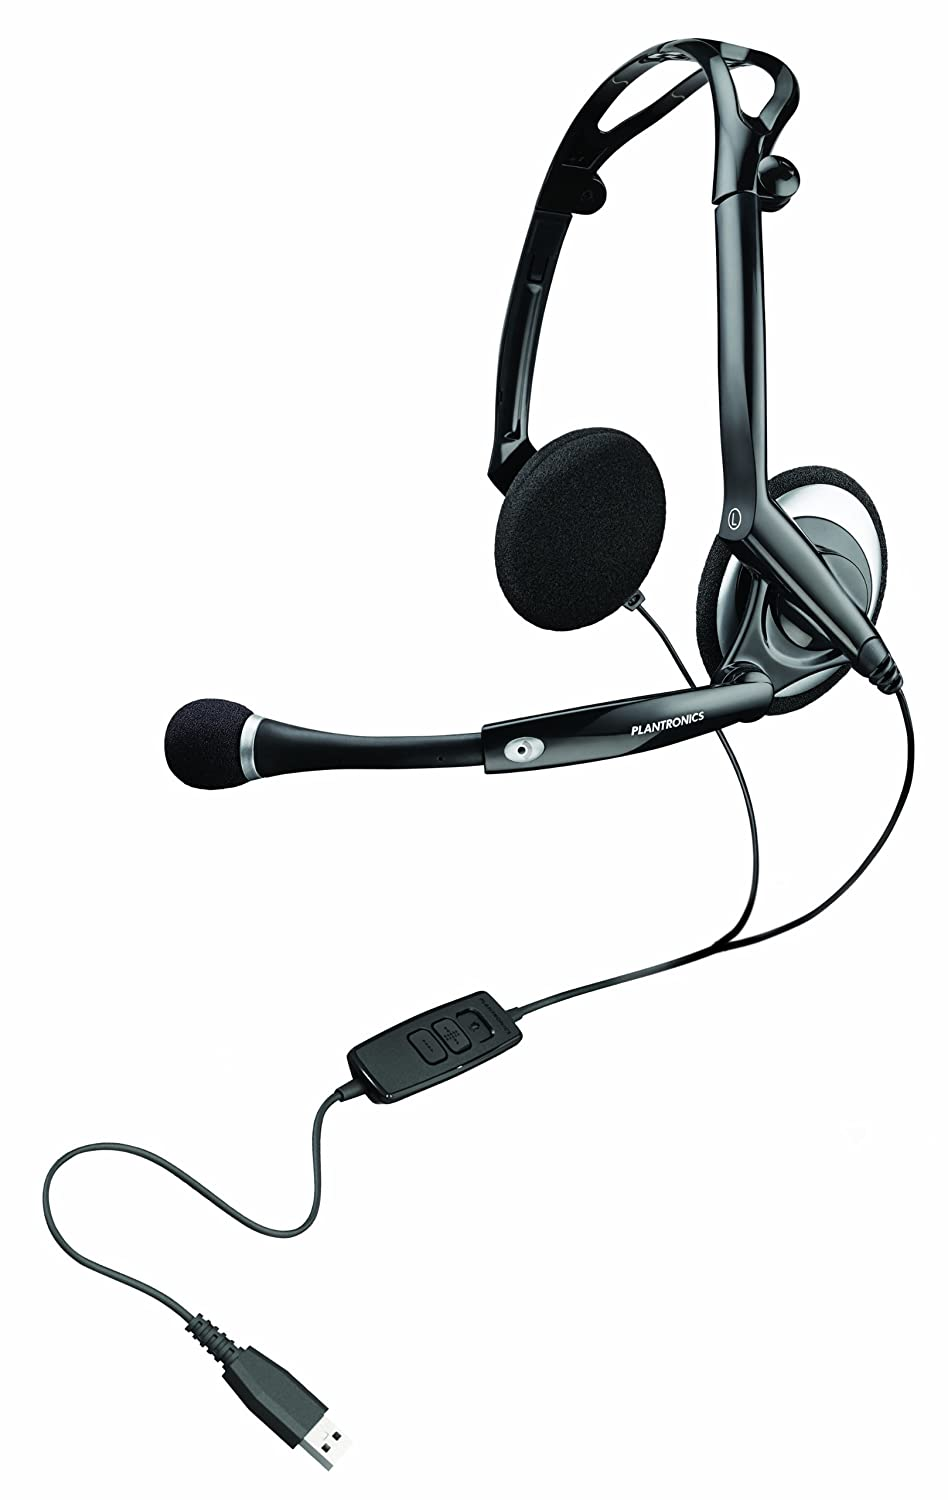 Plantronics Audio 400 DSP faltbares Digital USB-Stereo-Headset 76921-15